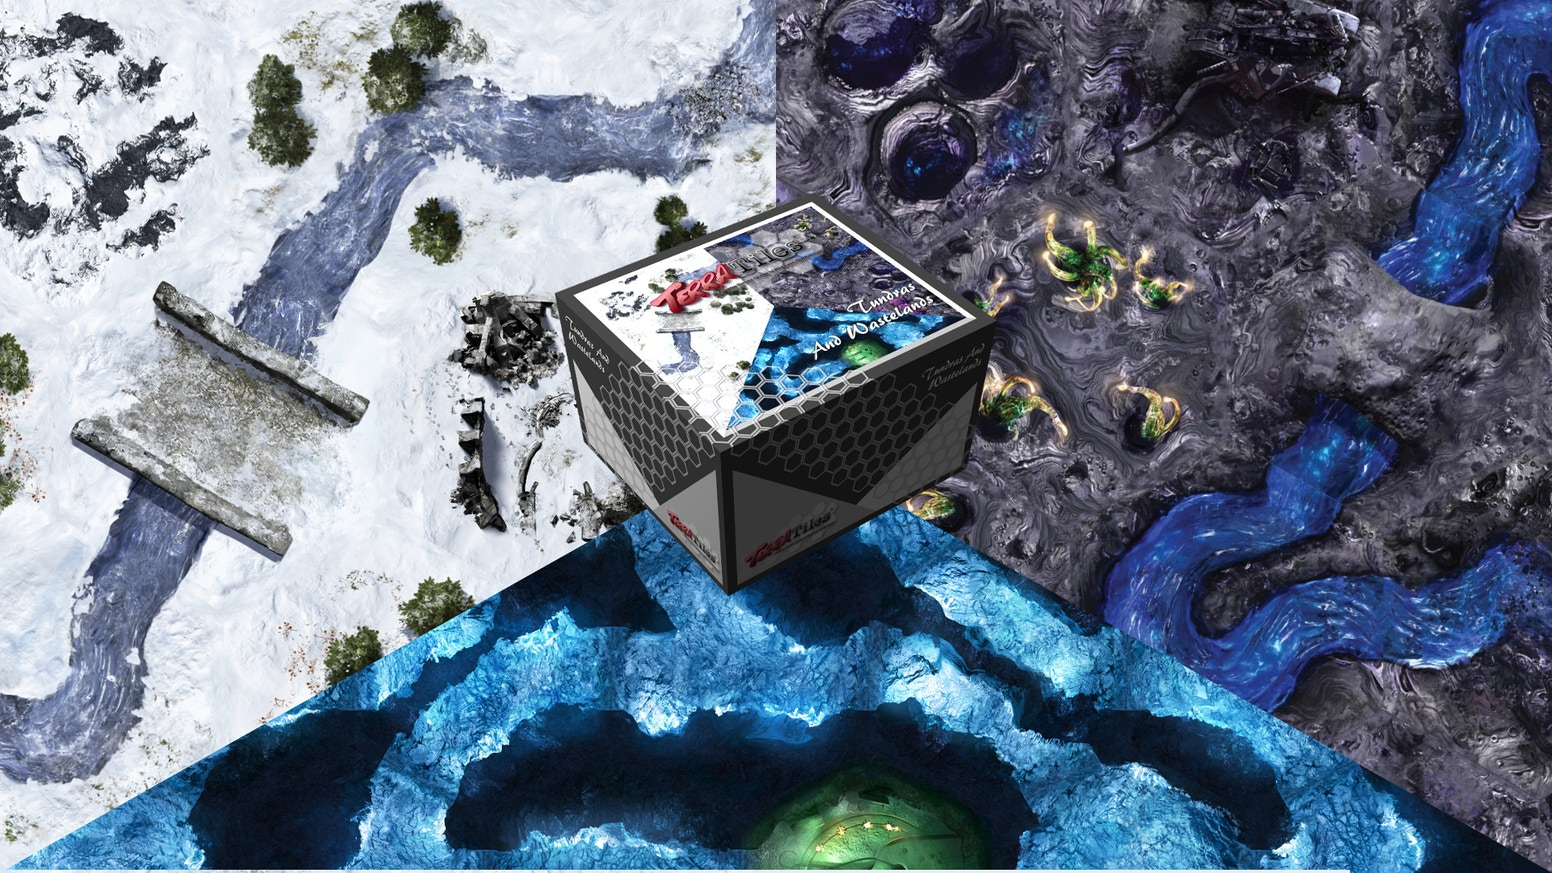 A 3-in-1 Tabletop Terrain System for Miniature Games, Wargames, and RPGs - features a winter tundra, war-torn wasteland, and cavern.